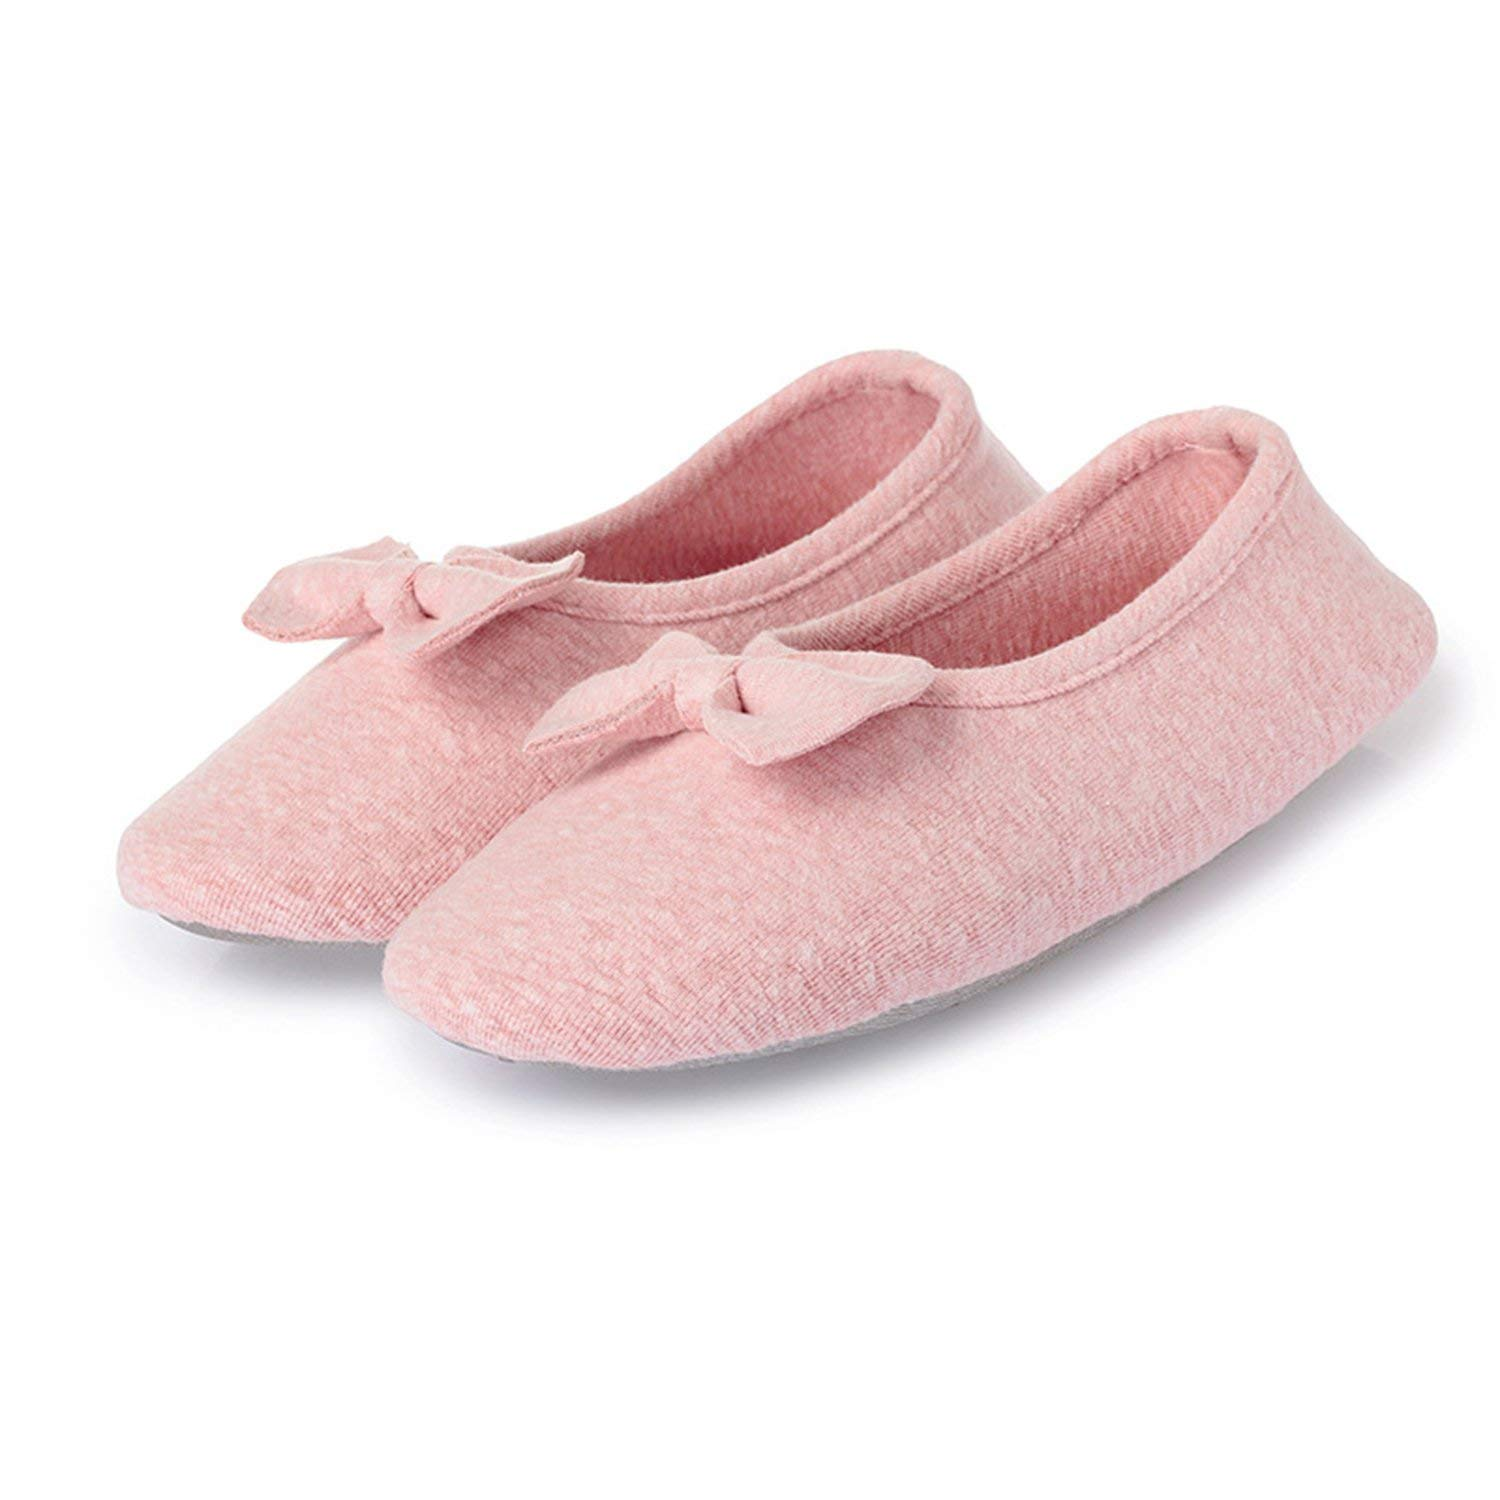 Get Quotations L Run Women S Ballerina Style Slippers Anti Skid House Indoor Shoes Washable